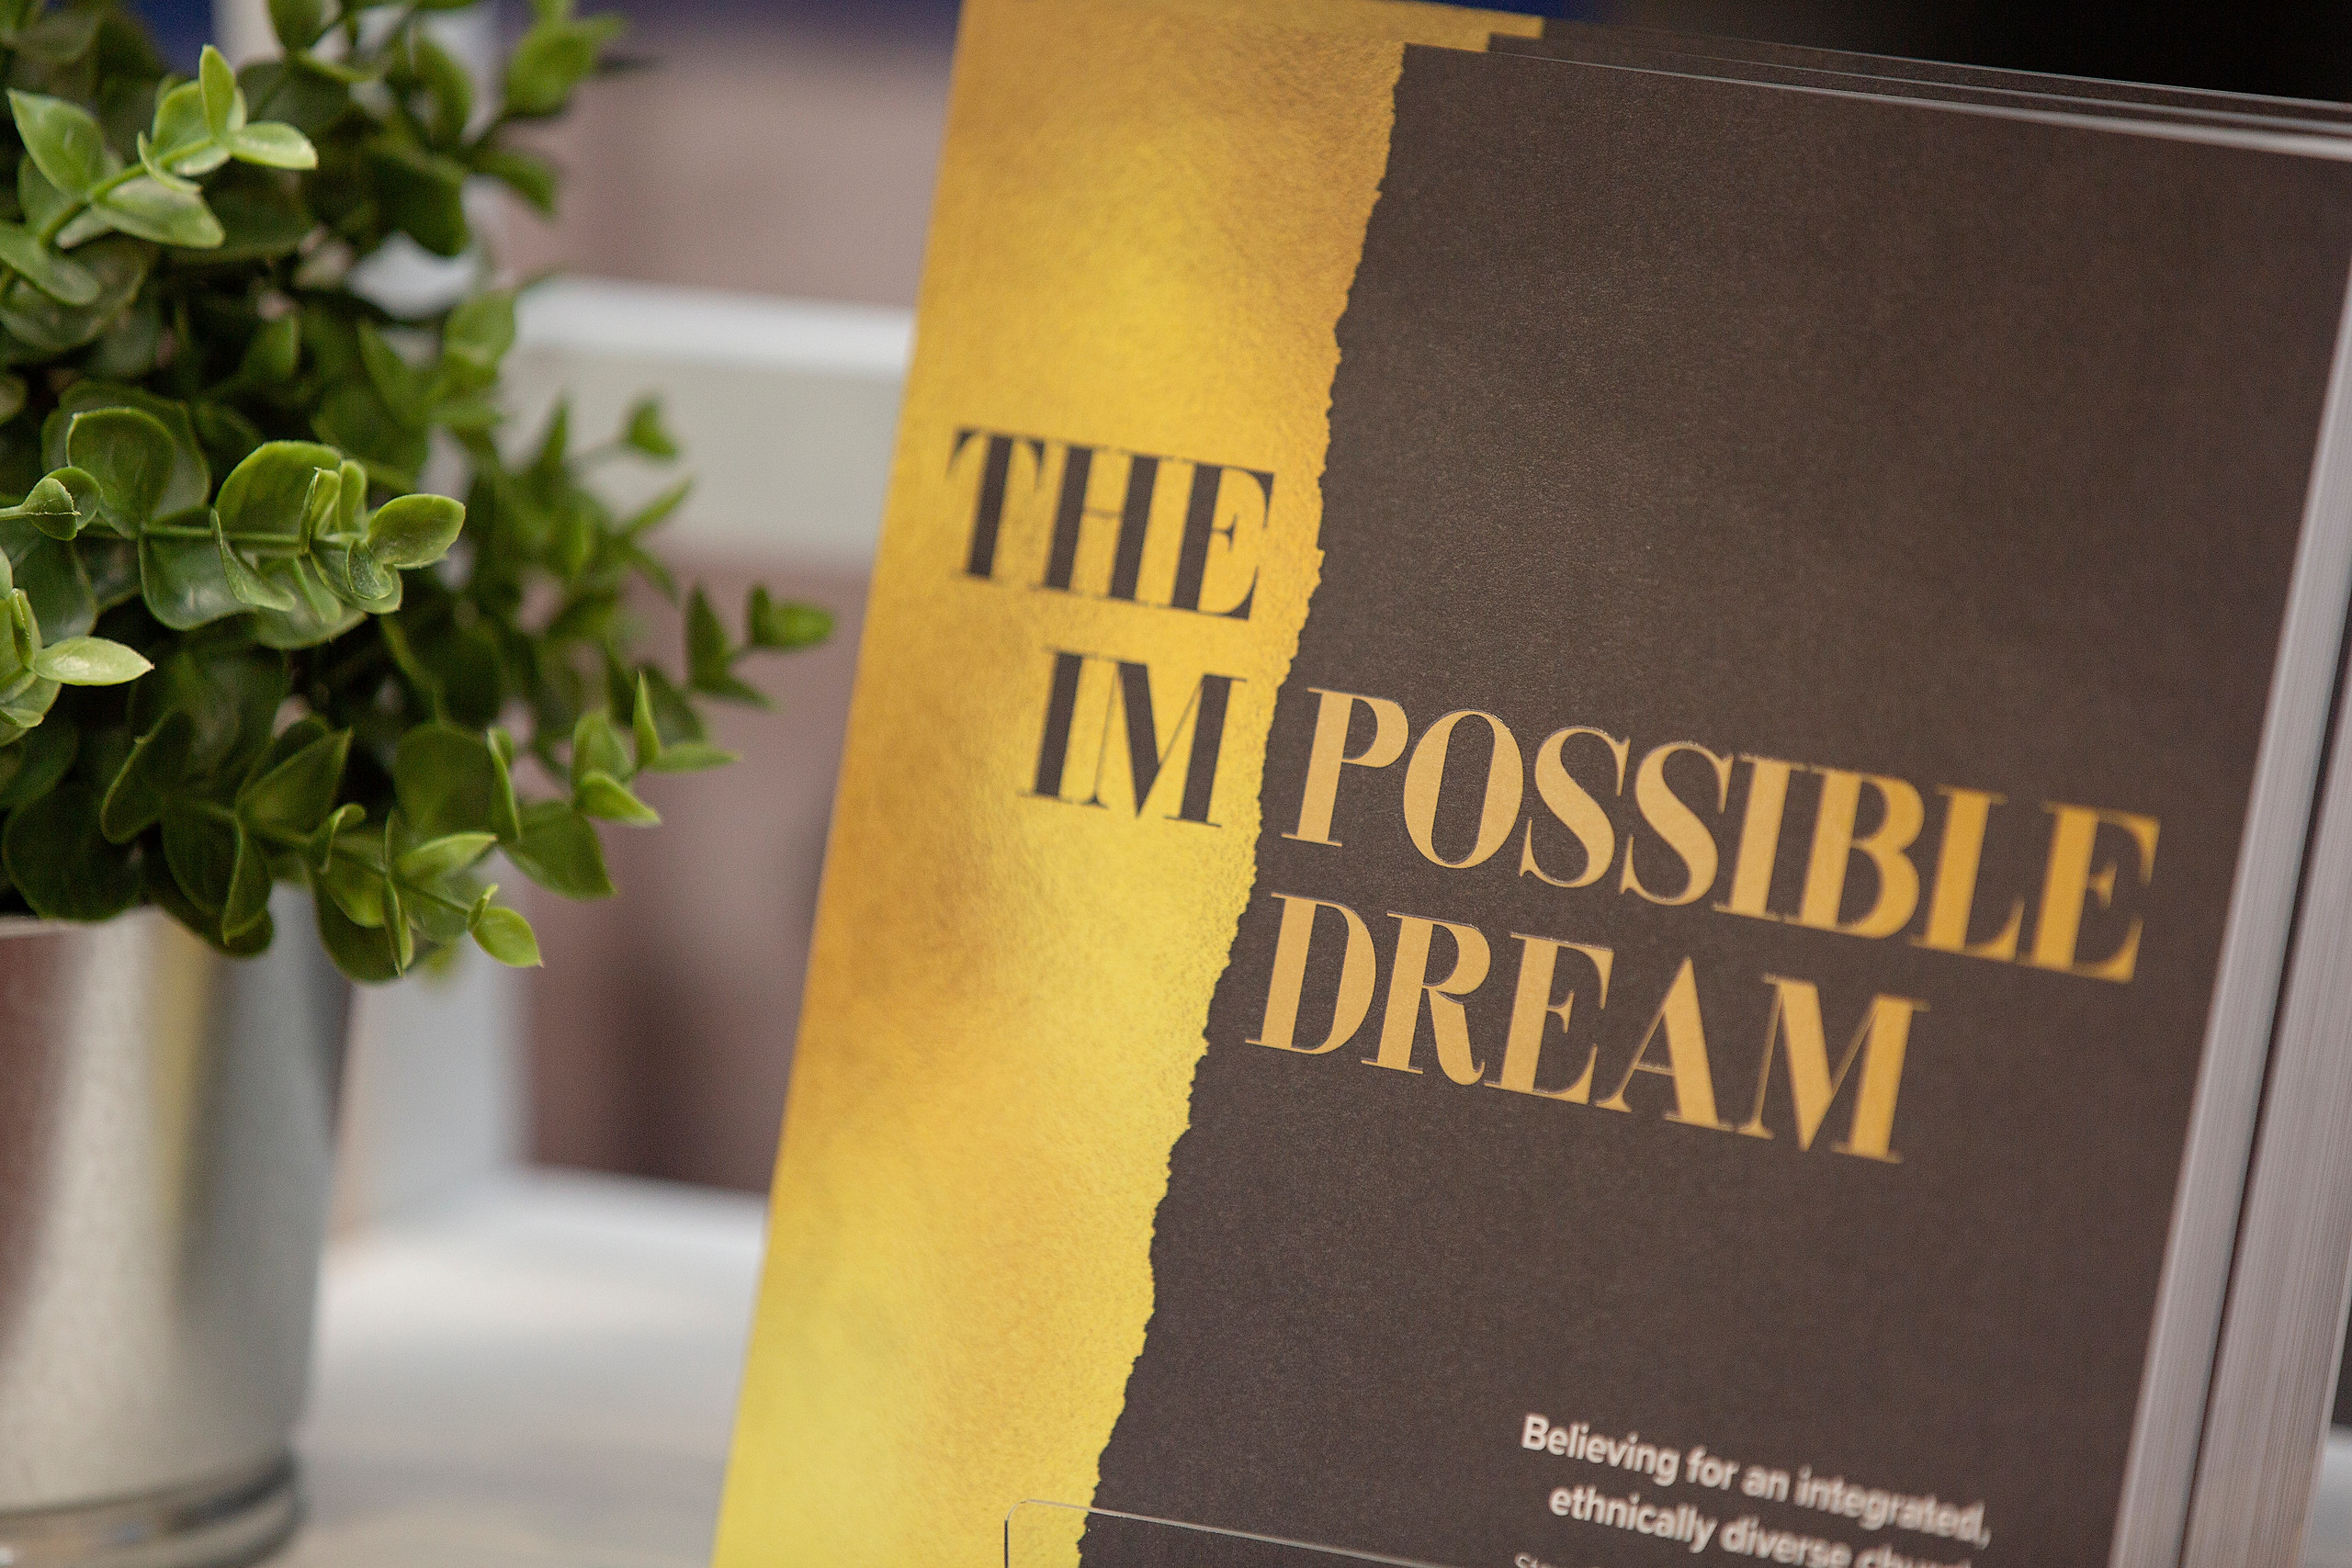 Impossible Dream book cover